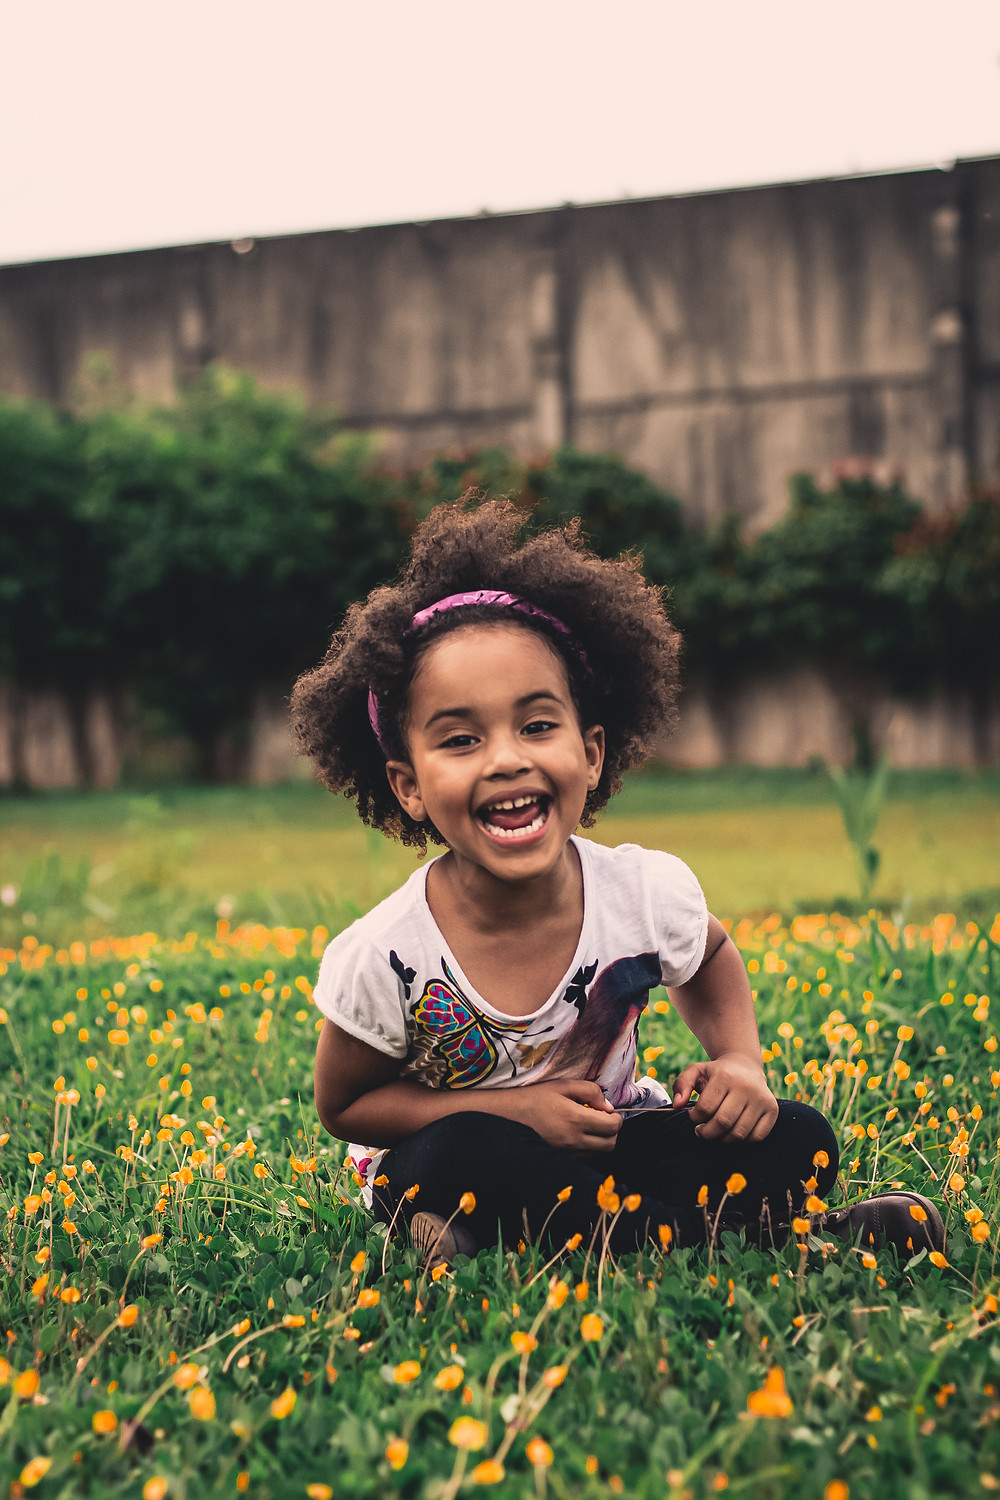 Young African American girl sitting happily in a field of small yellow flowers